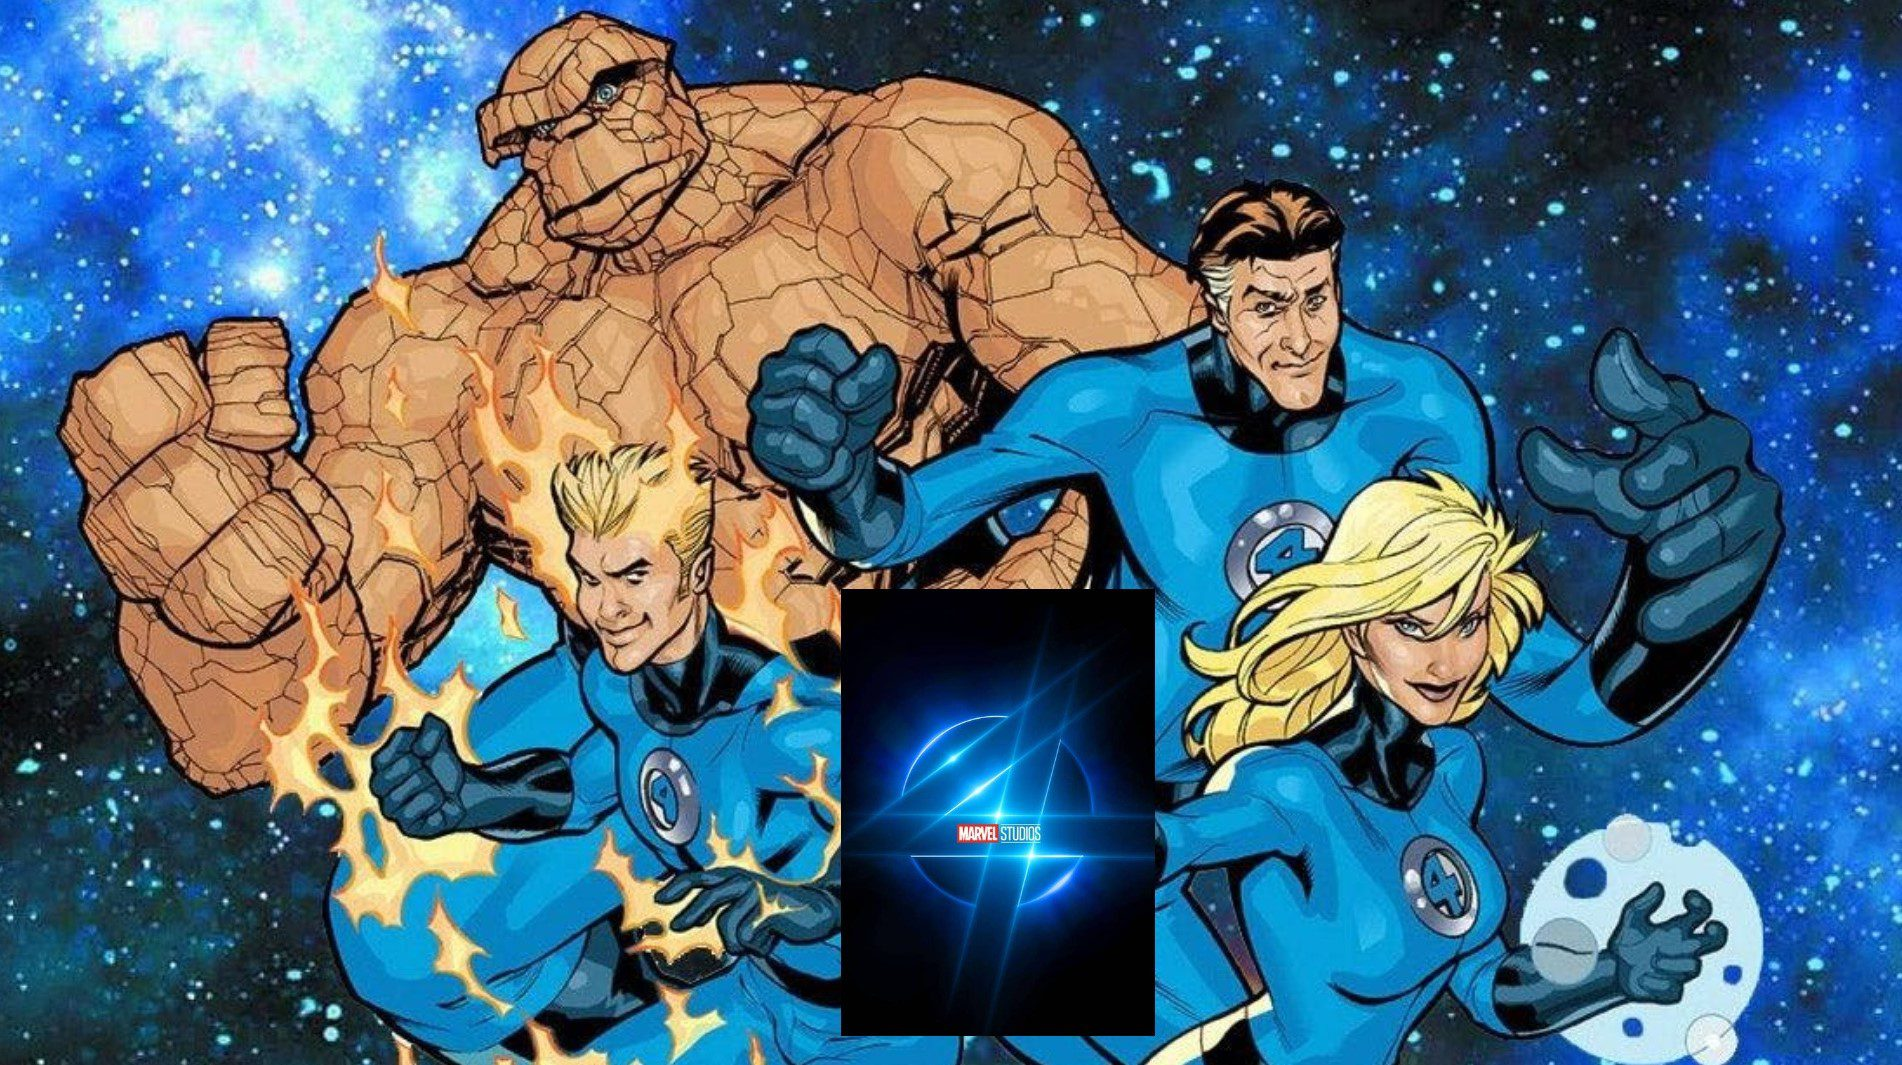 Marvel Studios has just started meeting with writers for Fantastic Four film